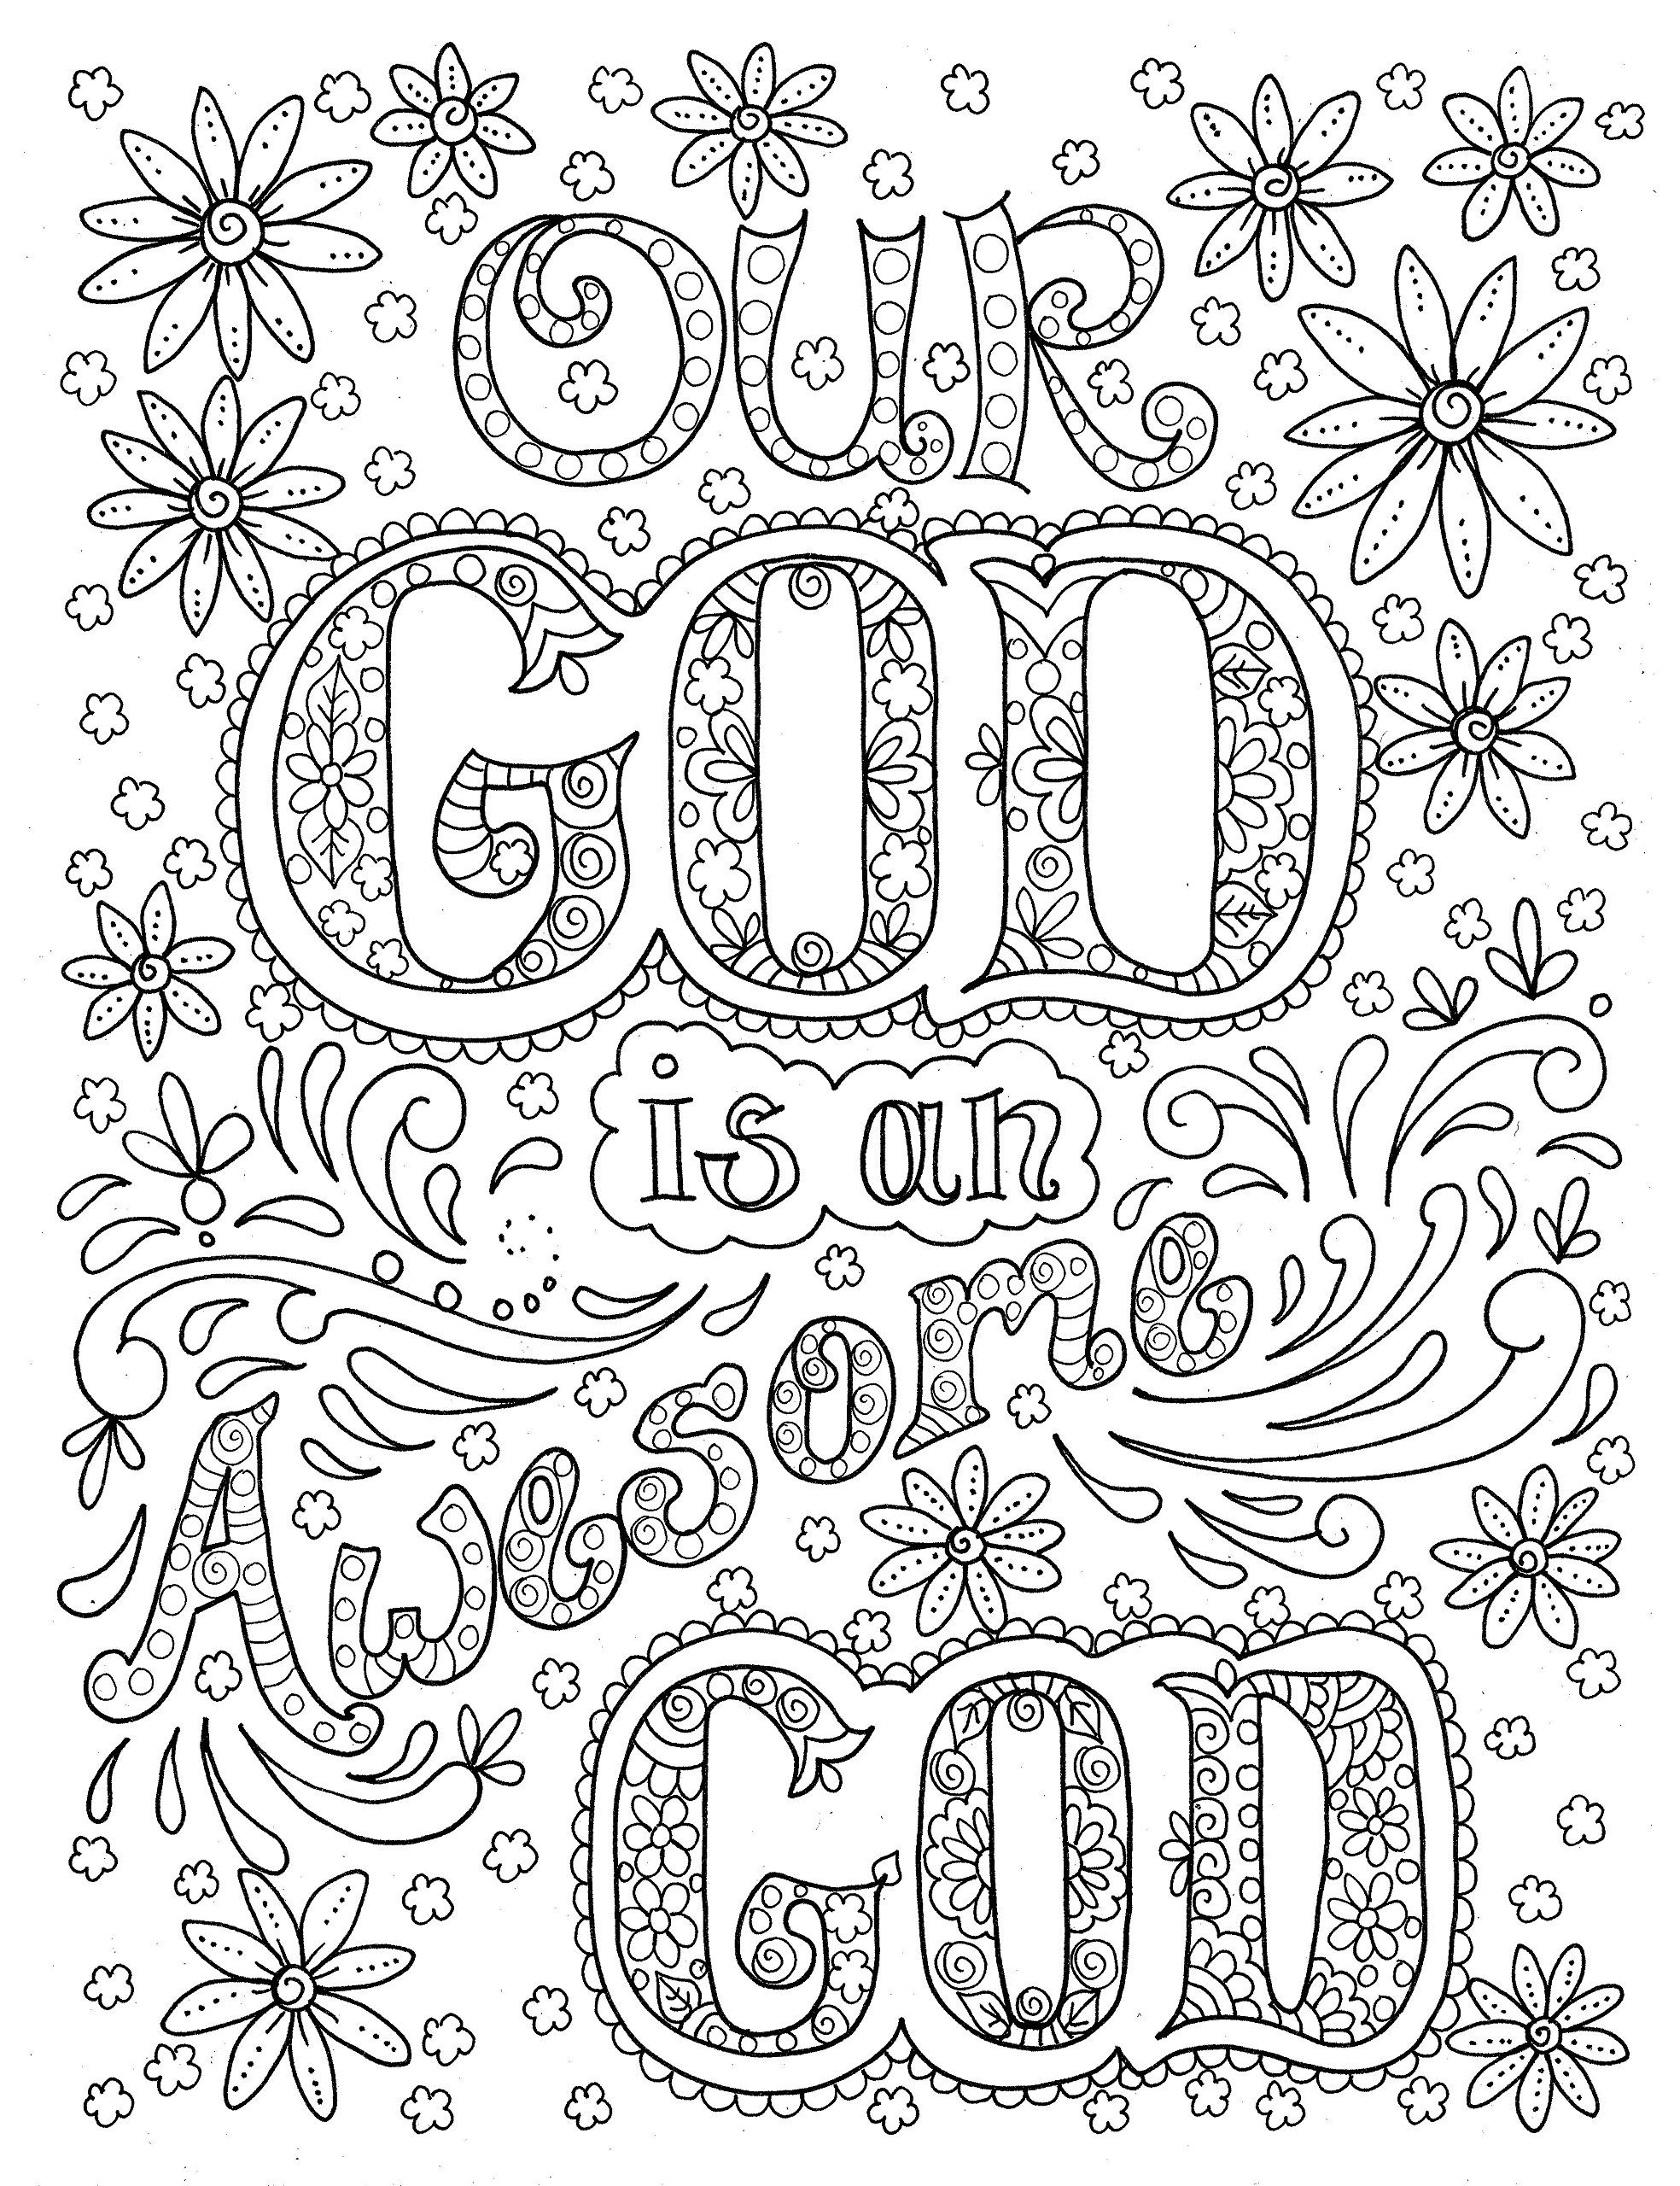 free bible verse coloring pages pin on color me happy free coloring pages bible verse